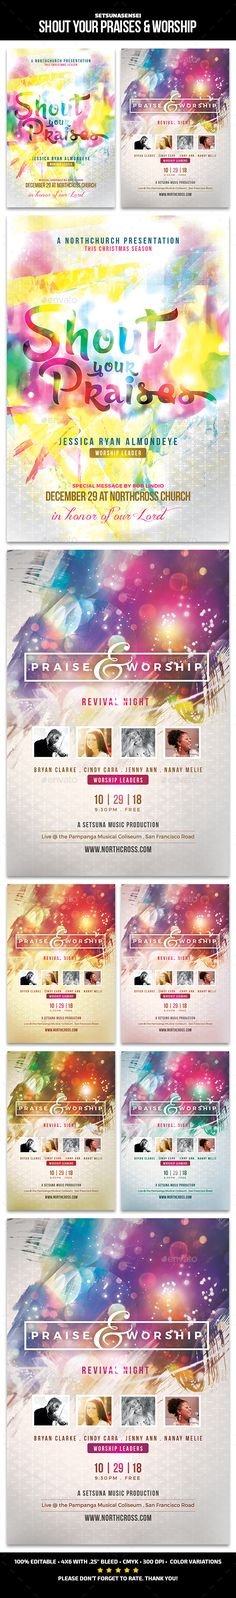 Shout your Praises & Worship Church Flyers by SetsunaSensei Shout your Praises & Worship Church FlyersThese flyers are perfect for promoting your church upcoming concert. Flyer Design Templates, Print Templates, Flyer Template, Worship Night, Praise And Worship, Worship Jesus, Flyer Inspiration, Festival Download, Concert Flyer